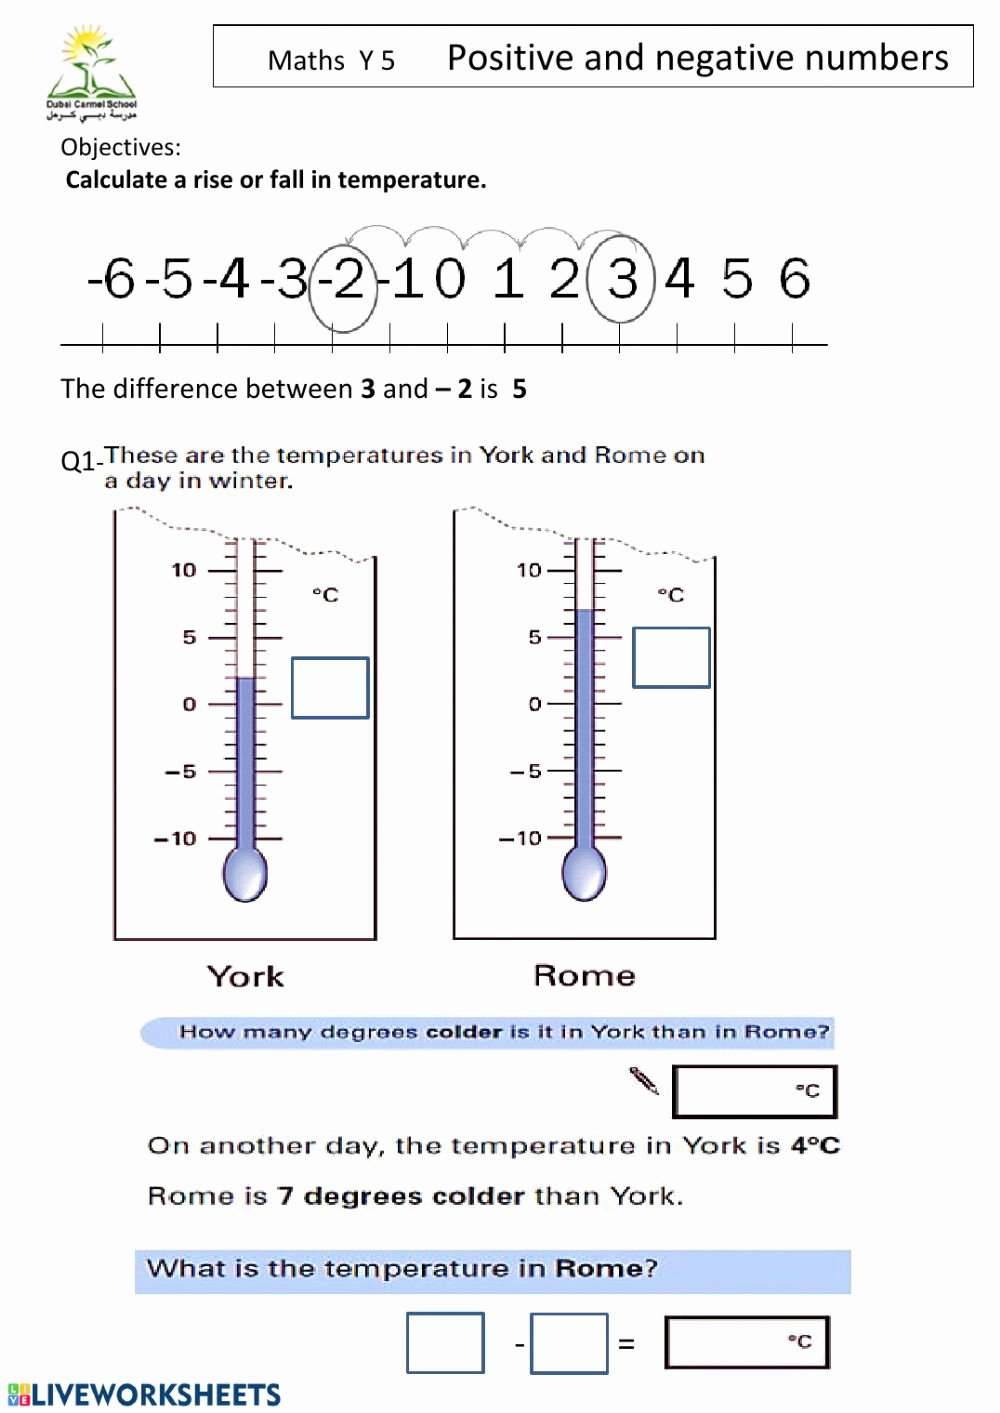 Positive and Negative Number Worksheets New Positive and Negative Numbers Worksheet